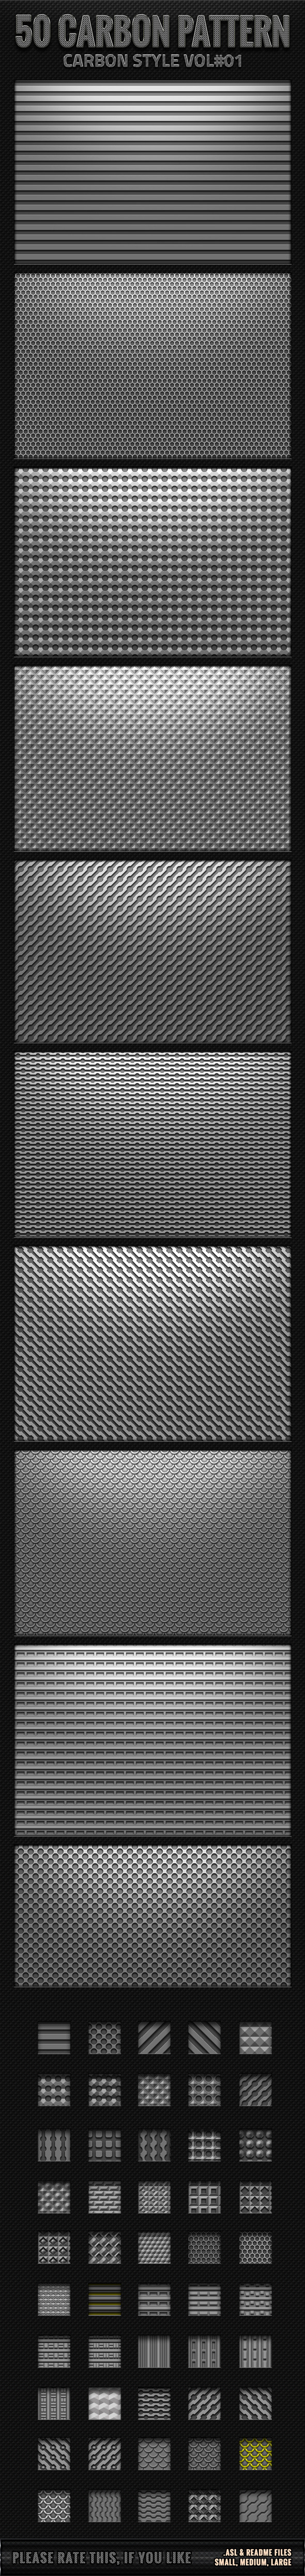 GraphicRiver 50 Carbon Pattern 11510729